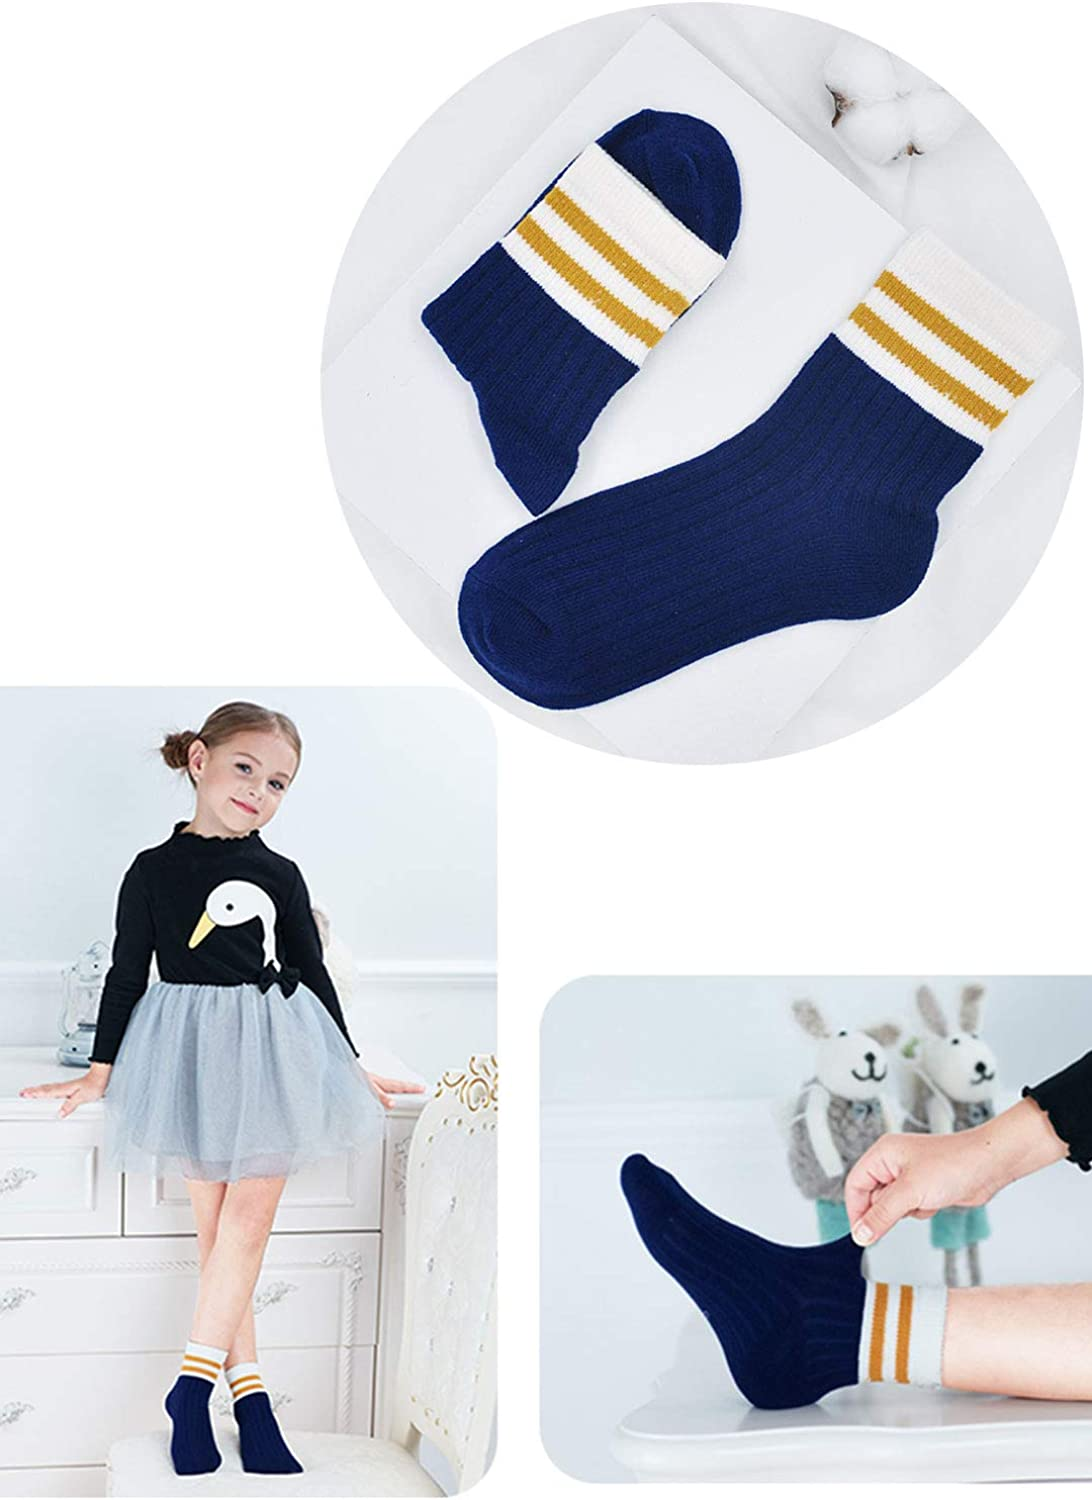 ZAKASA Kids Toddler Big Little Girls Boys Moda Cute Cotton Crew Seamless Socks Confezione da 5 pezzi